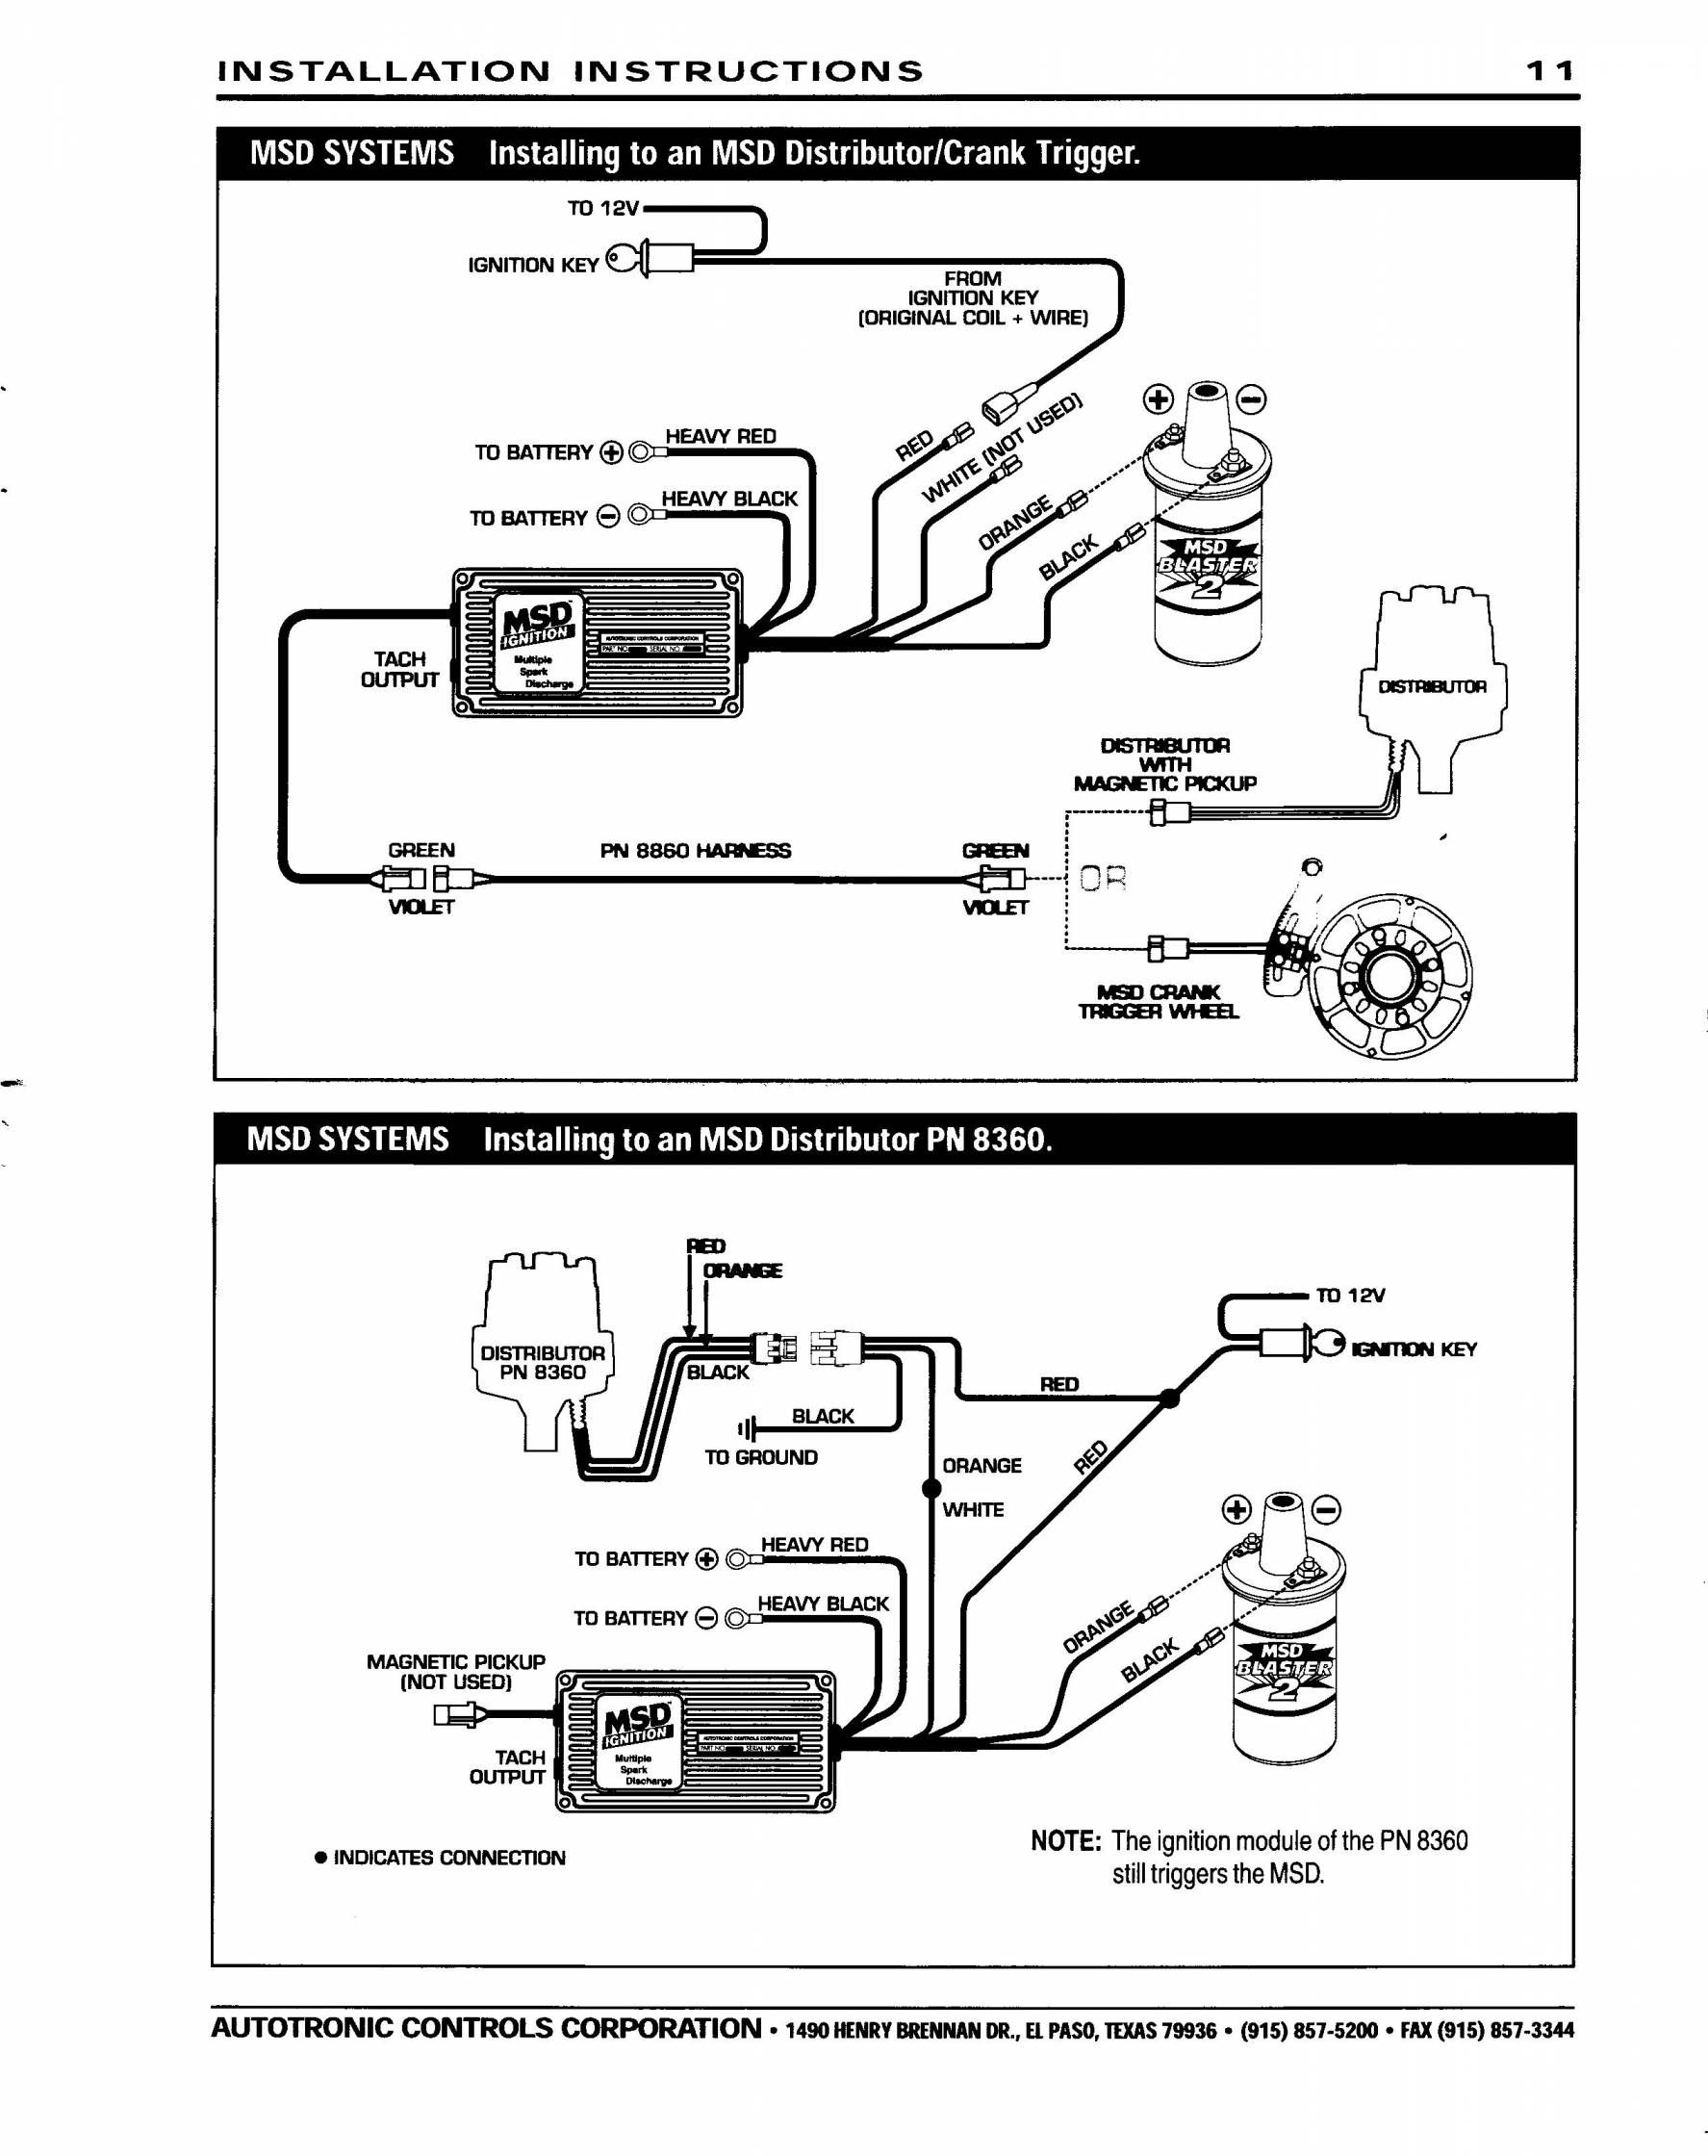 Ignition Coil Wiring Diagram : ignition, wiring, diagram, Taylor, Wiring, Diagram, Ignition, Coil,, Wire,, Ignite